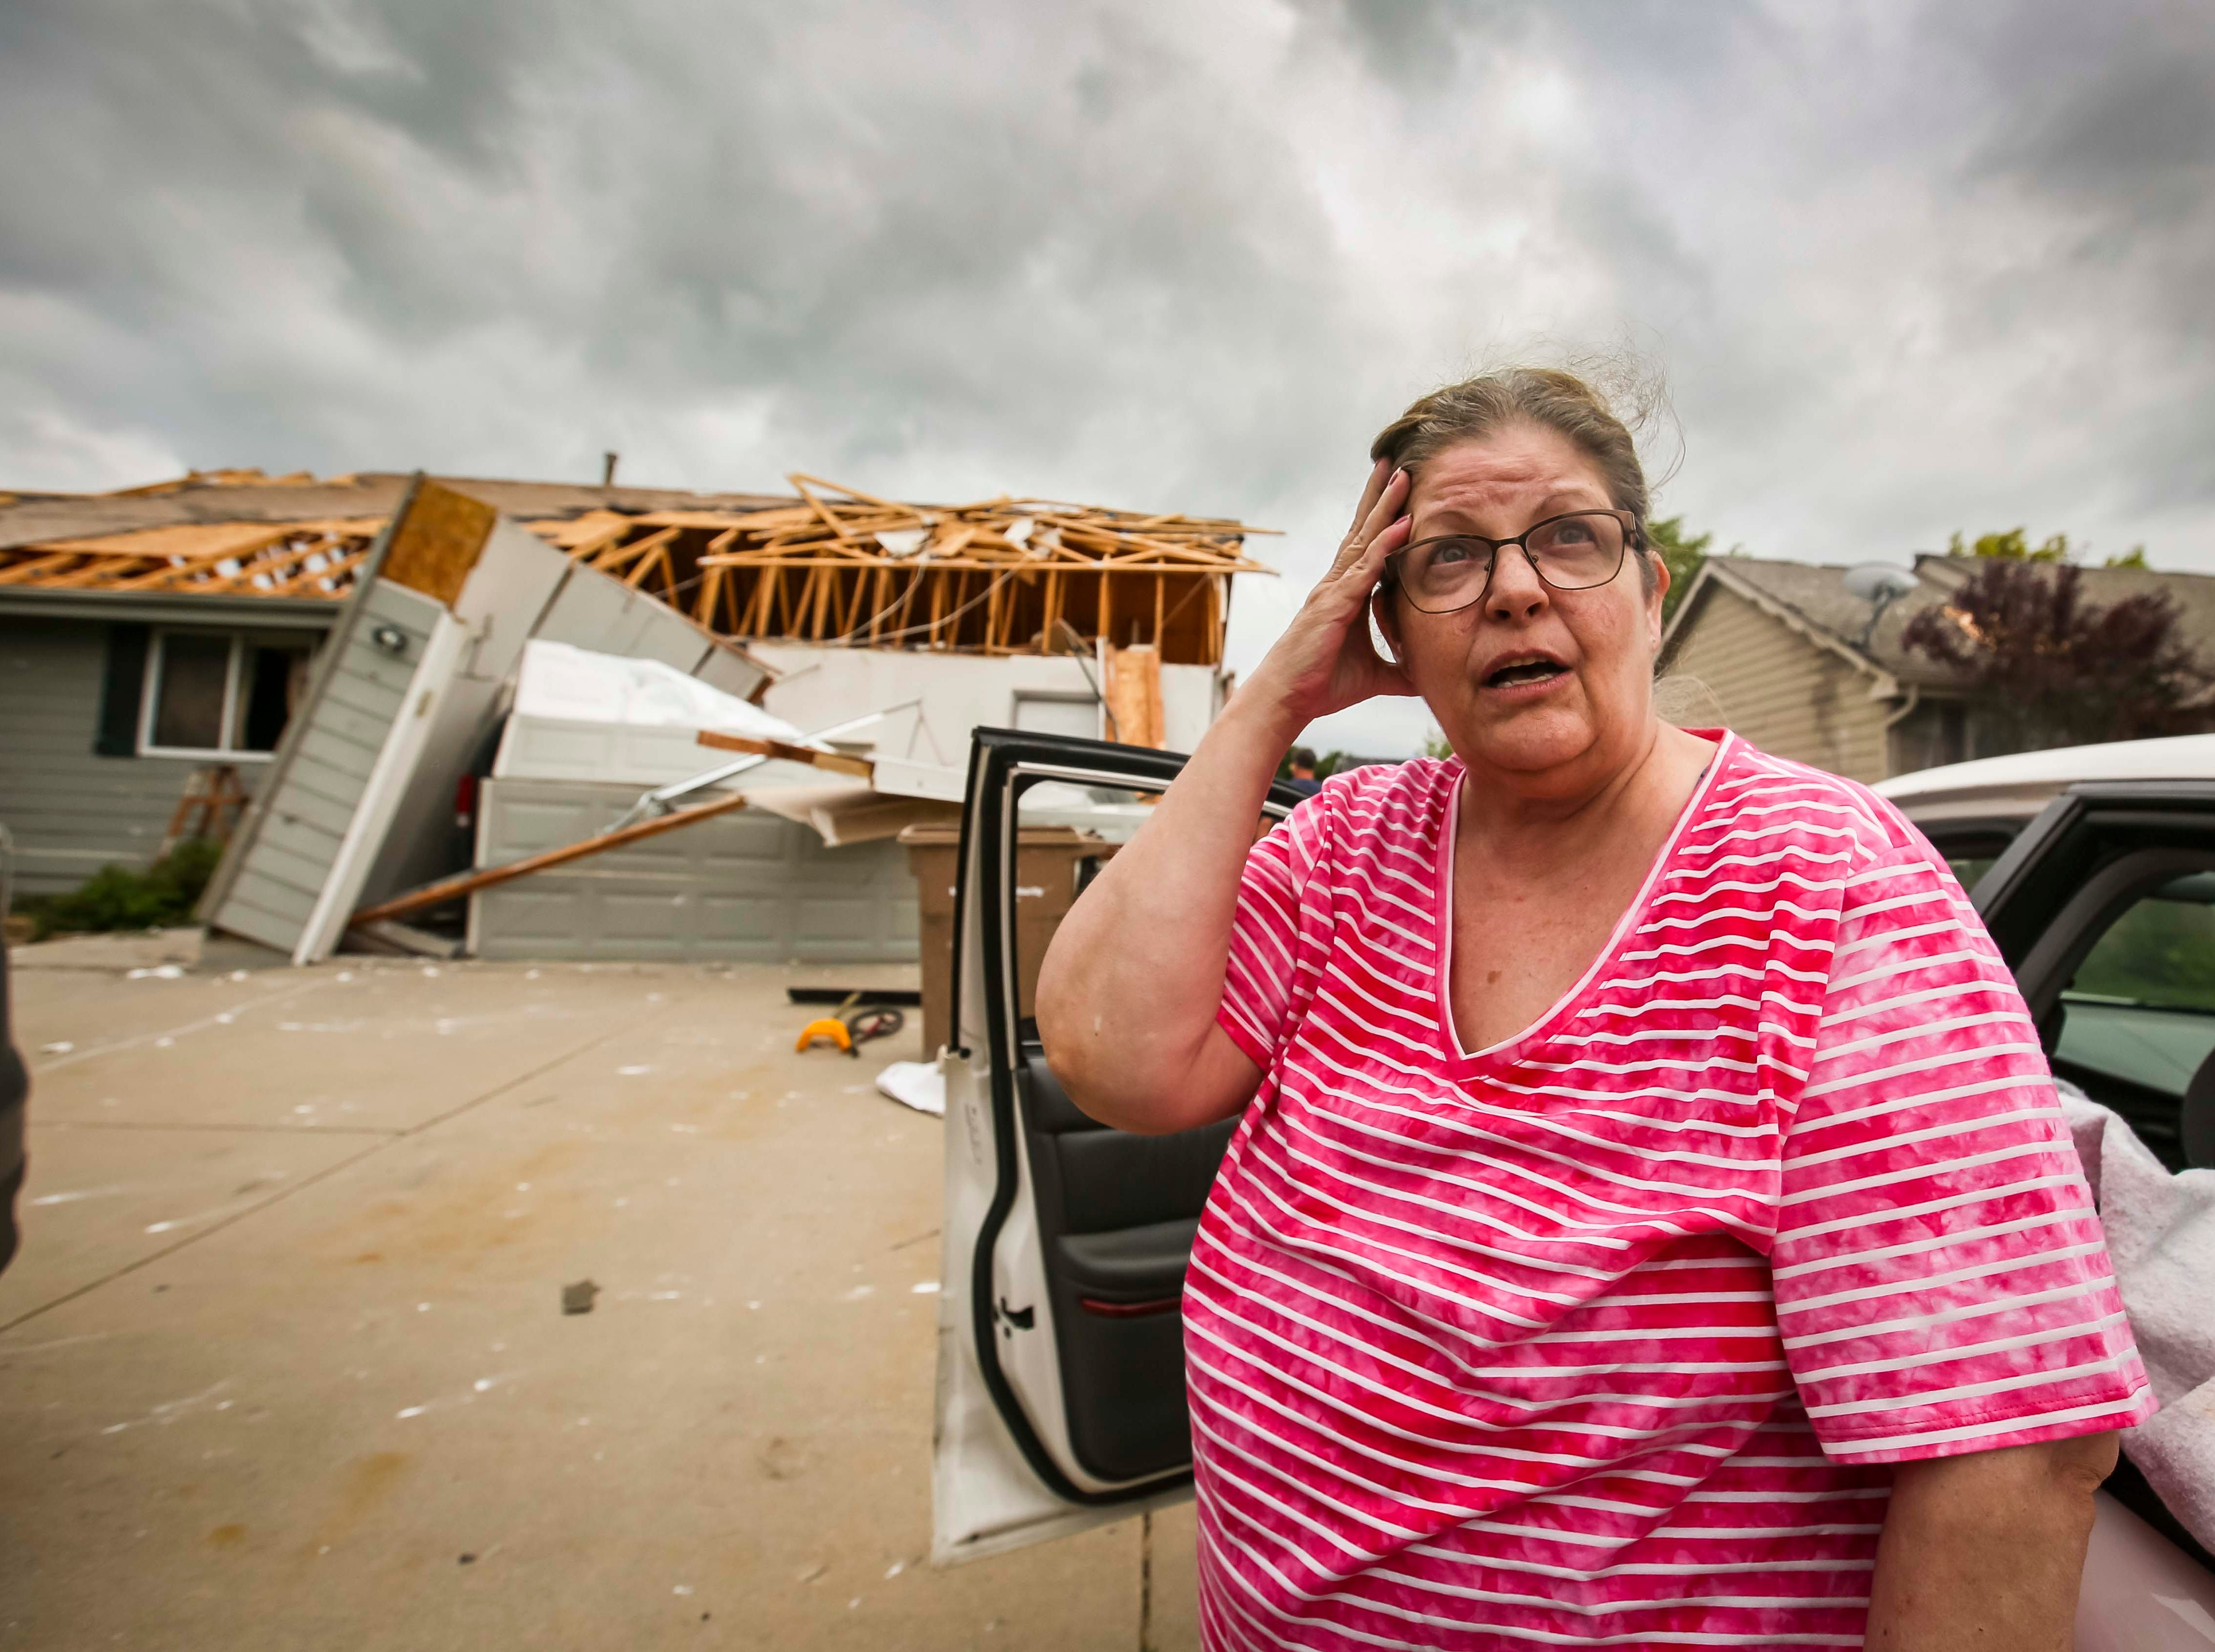 July 20, 2018: Susan Ratliff's home is destroyed on the west end of Bondurant, Iowa after a tornado slashed through the town. She was on the top step of her basement stairs when it hit the home.